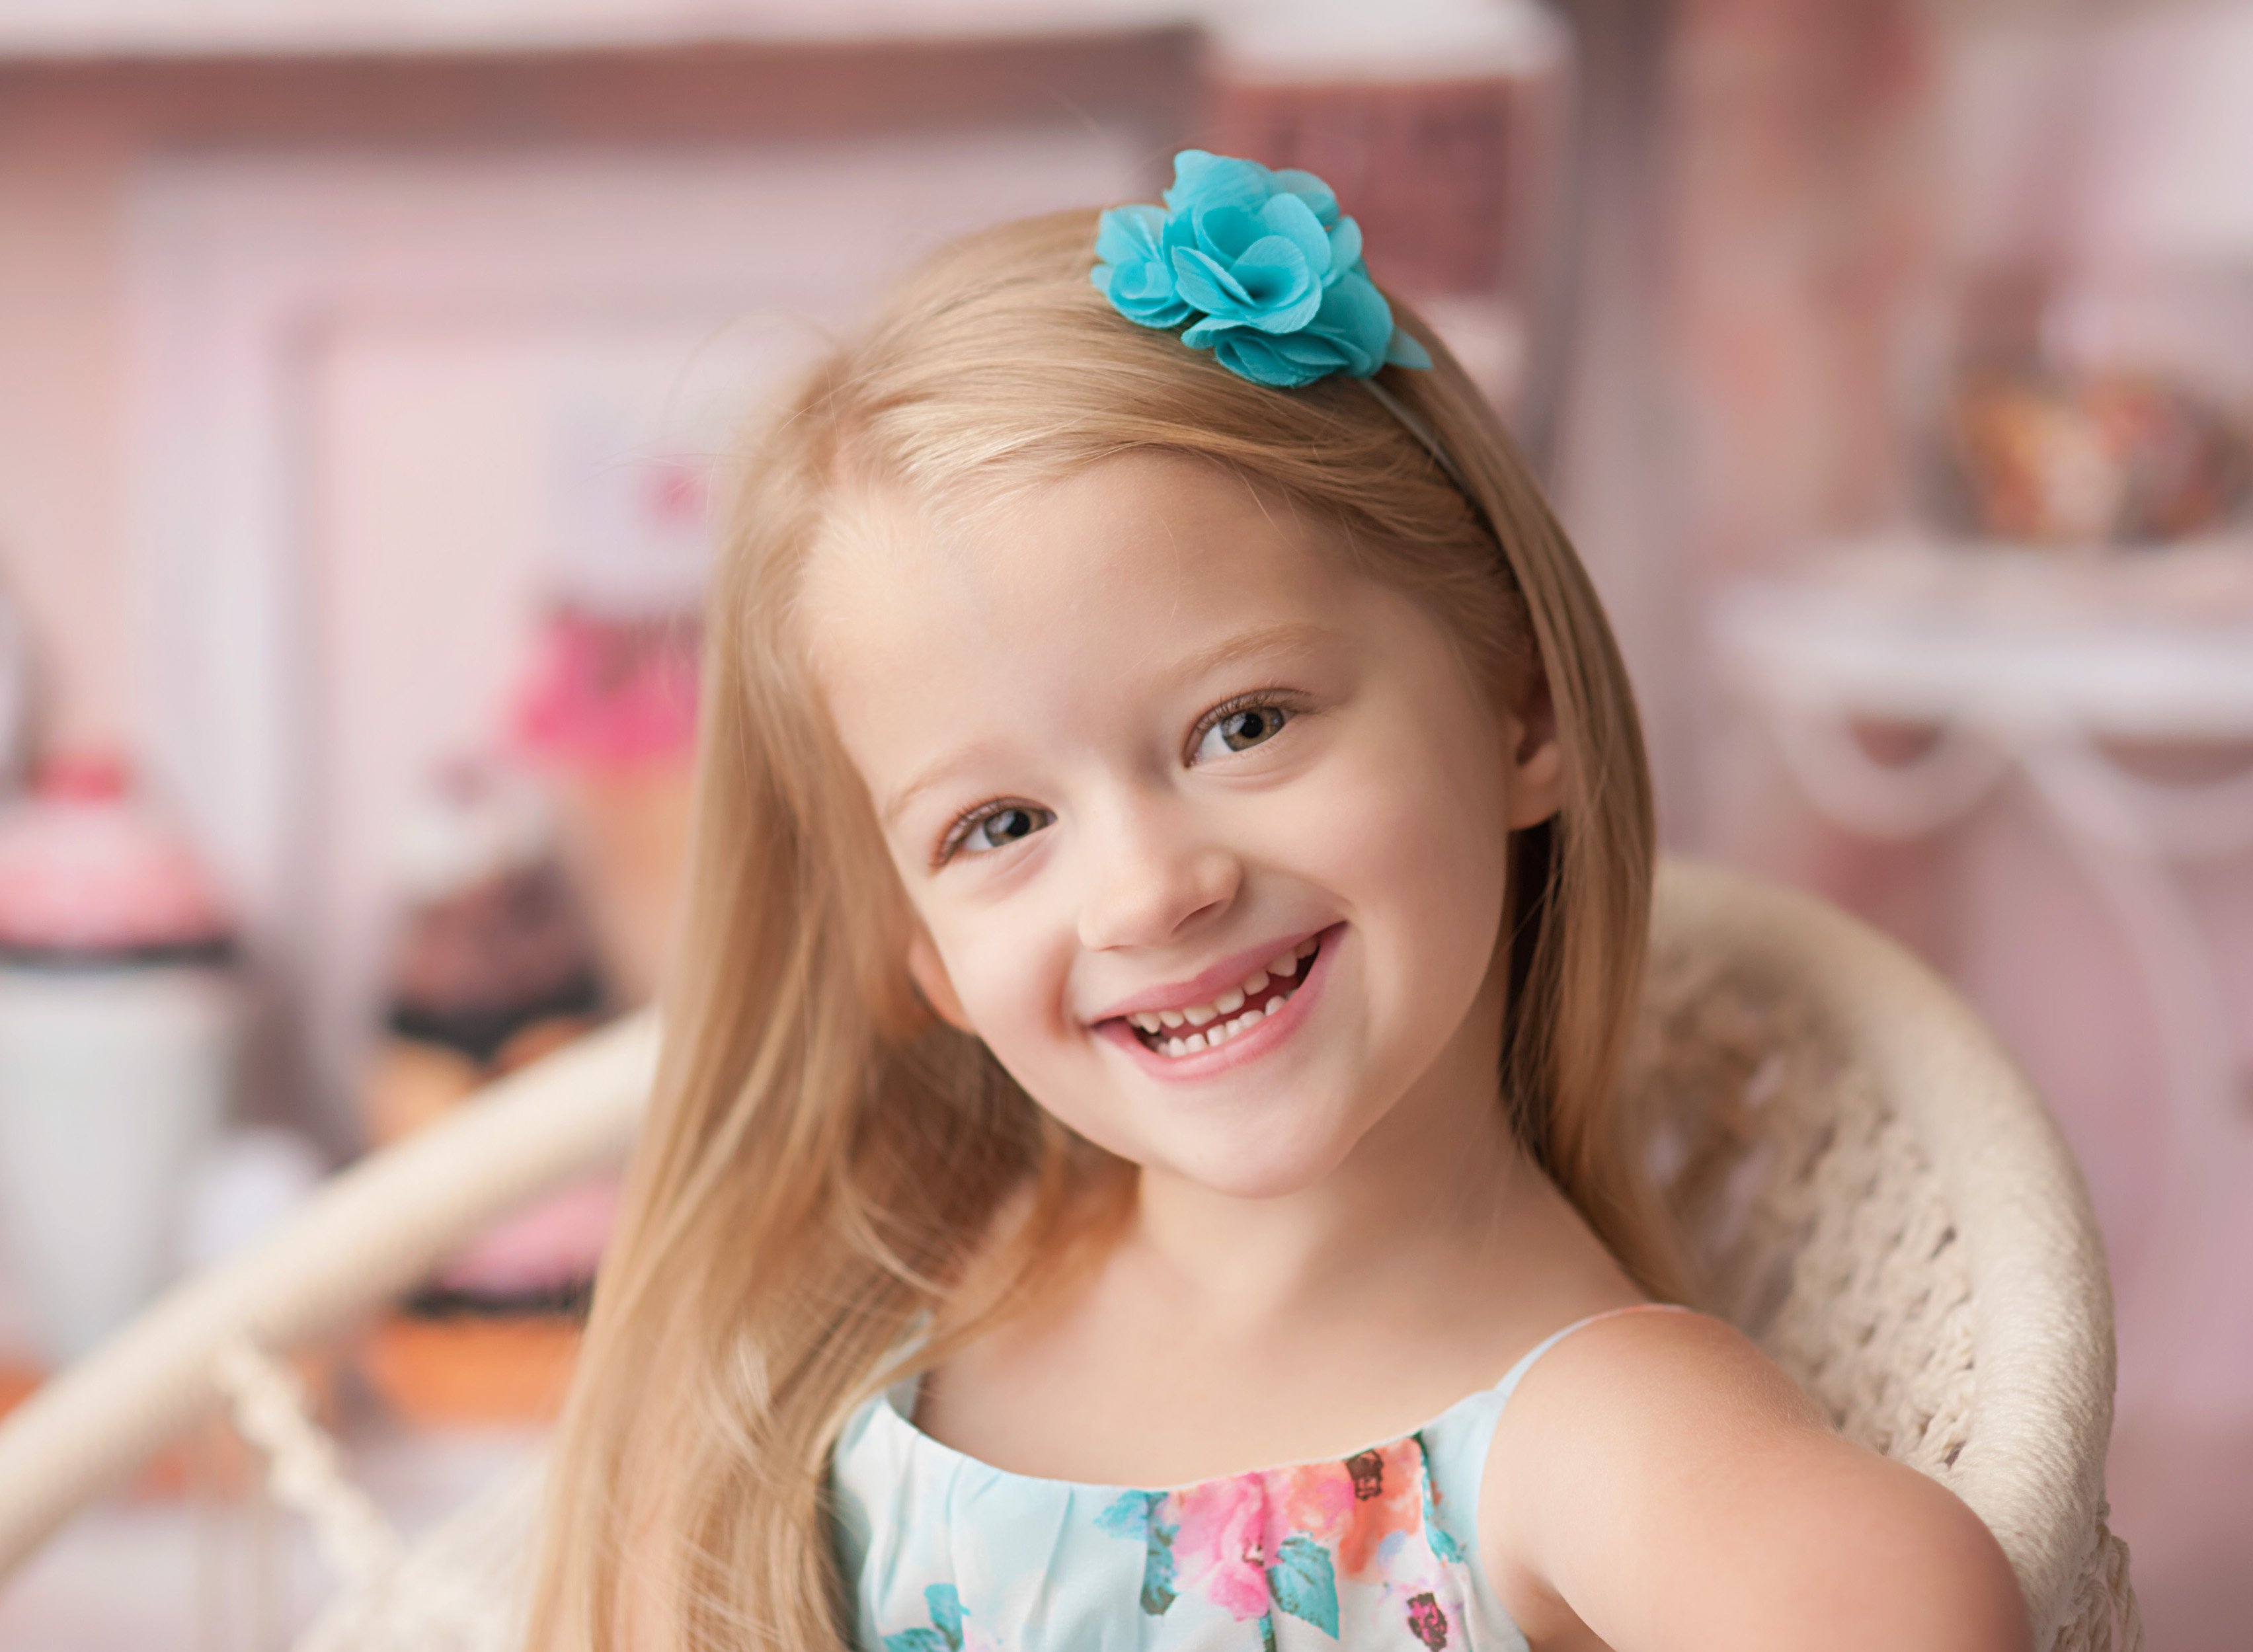 closeup of girl smiling against ice cream backdrop